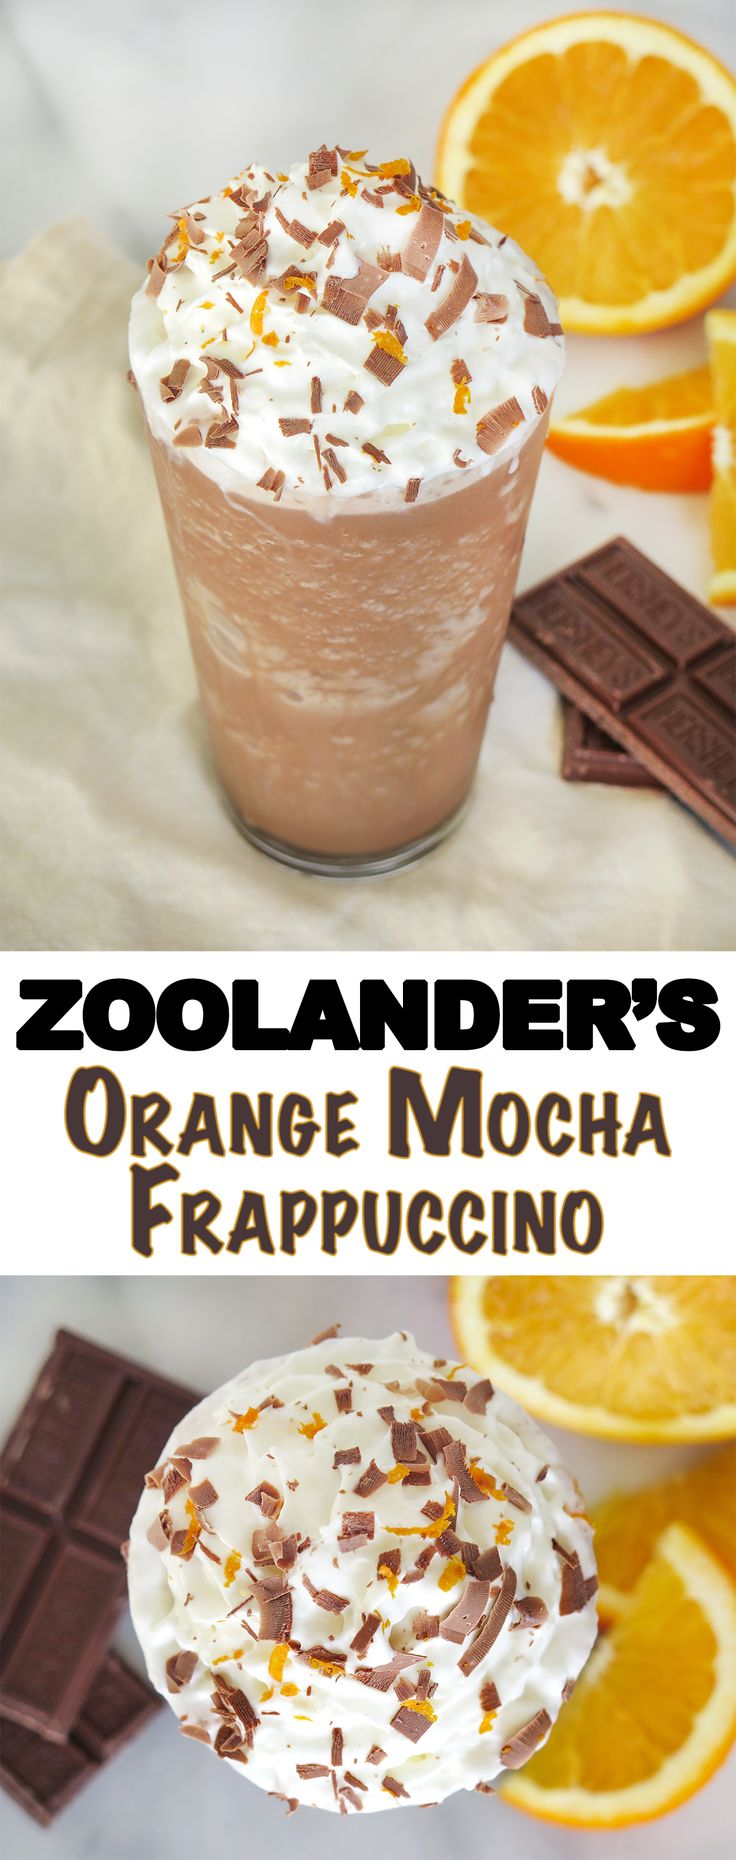 Fans of Zoolander will love this one especially, but the orange and chocolate flavor combo is universally appealing. #starbucks